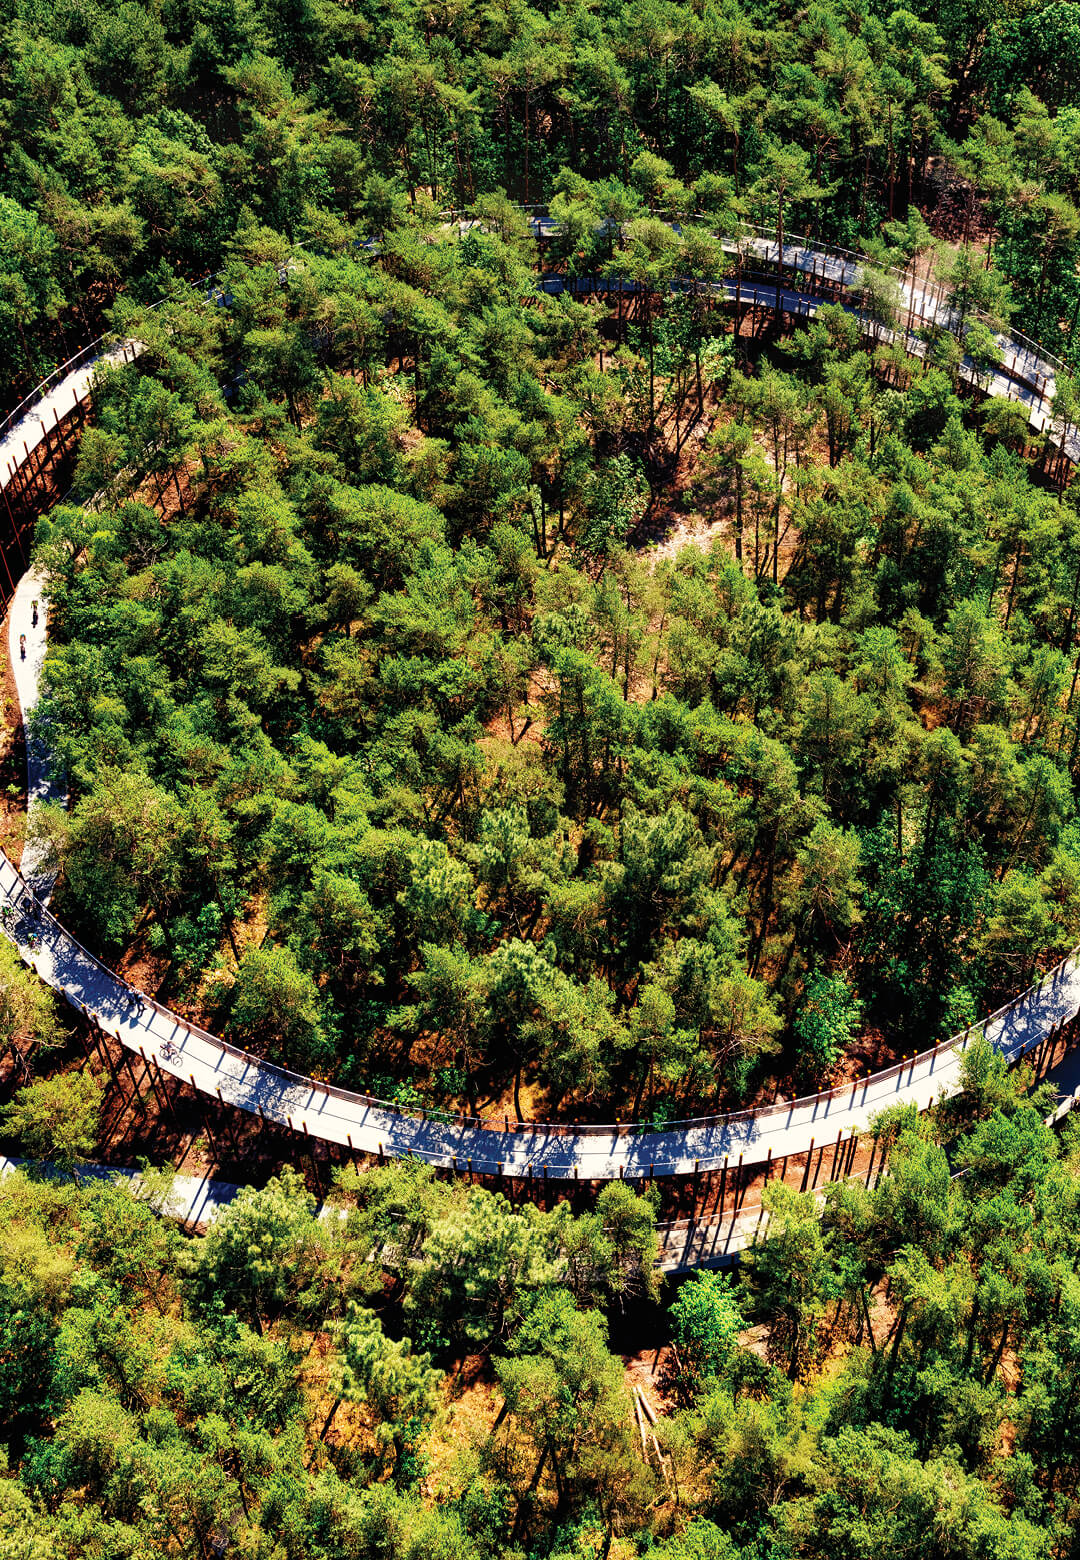 Cycling Through The Trees enables visitors to cycle amid a Belgian forest | Cycling Through The Trees | BuroLandschap and De Gregorio & Partners | STIRworld